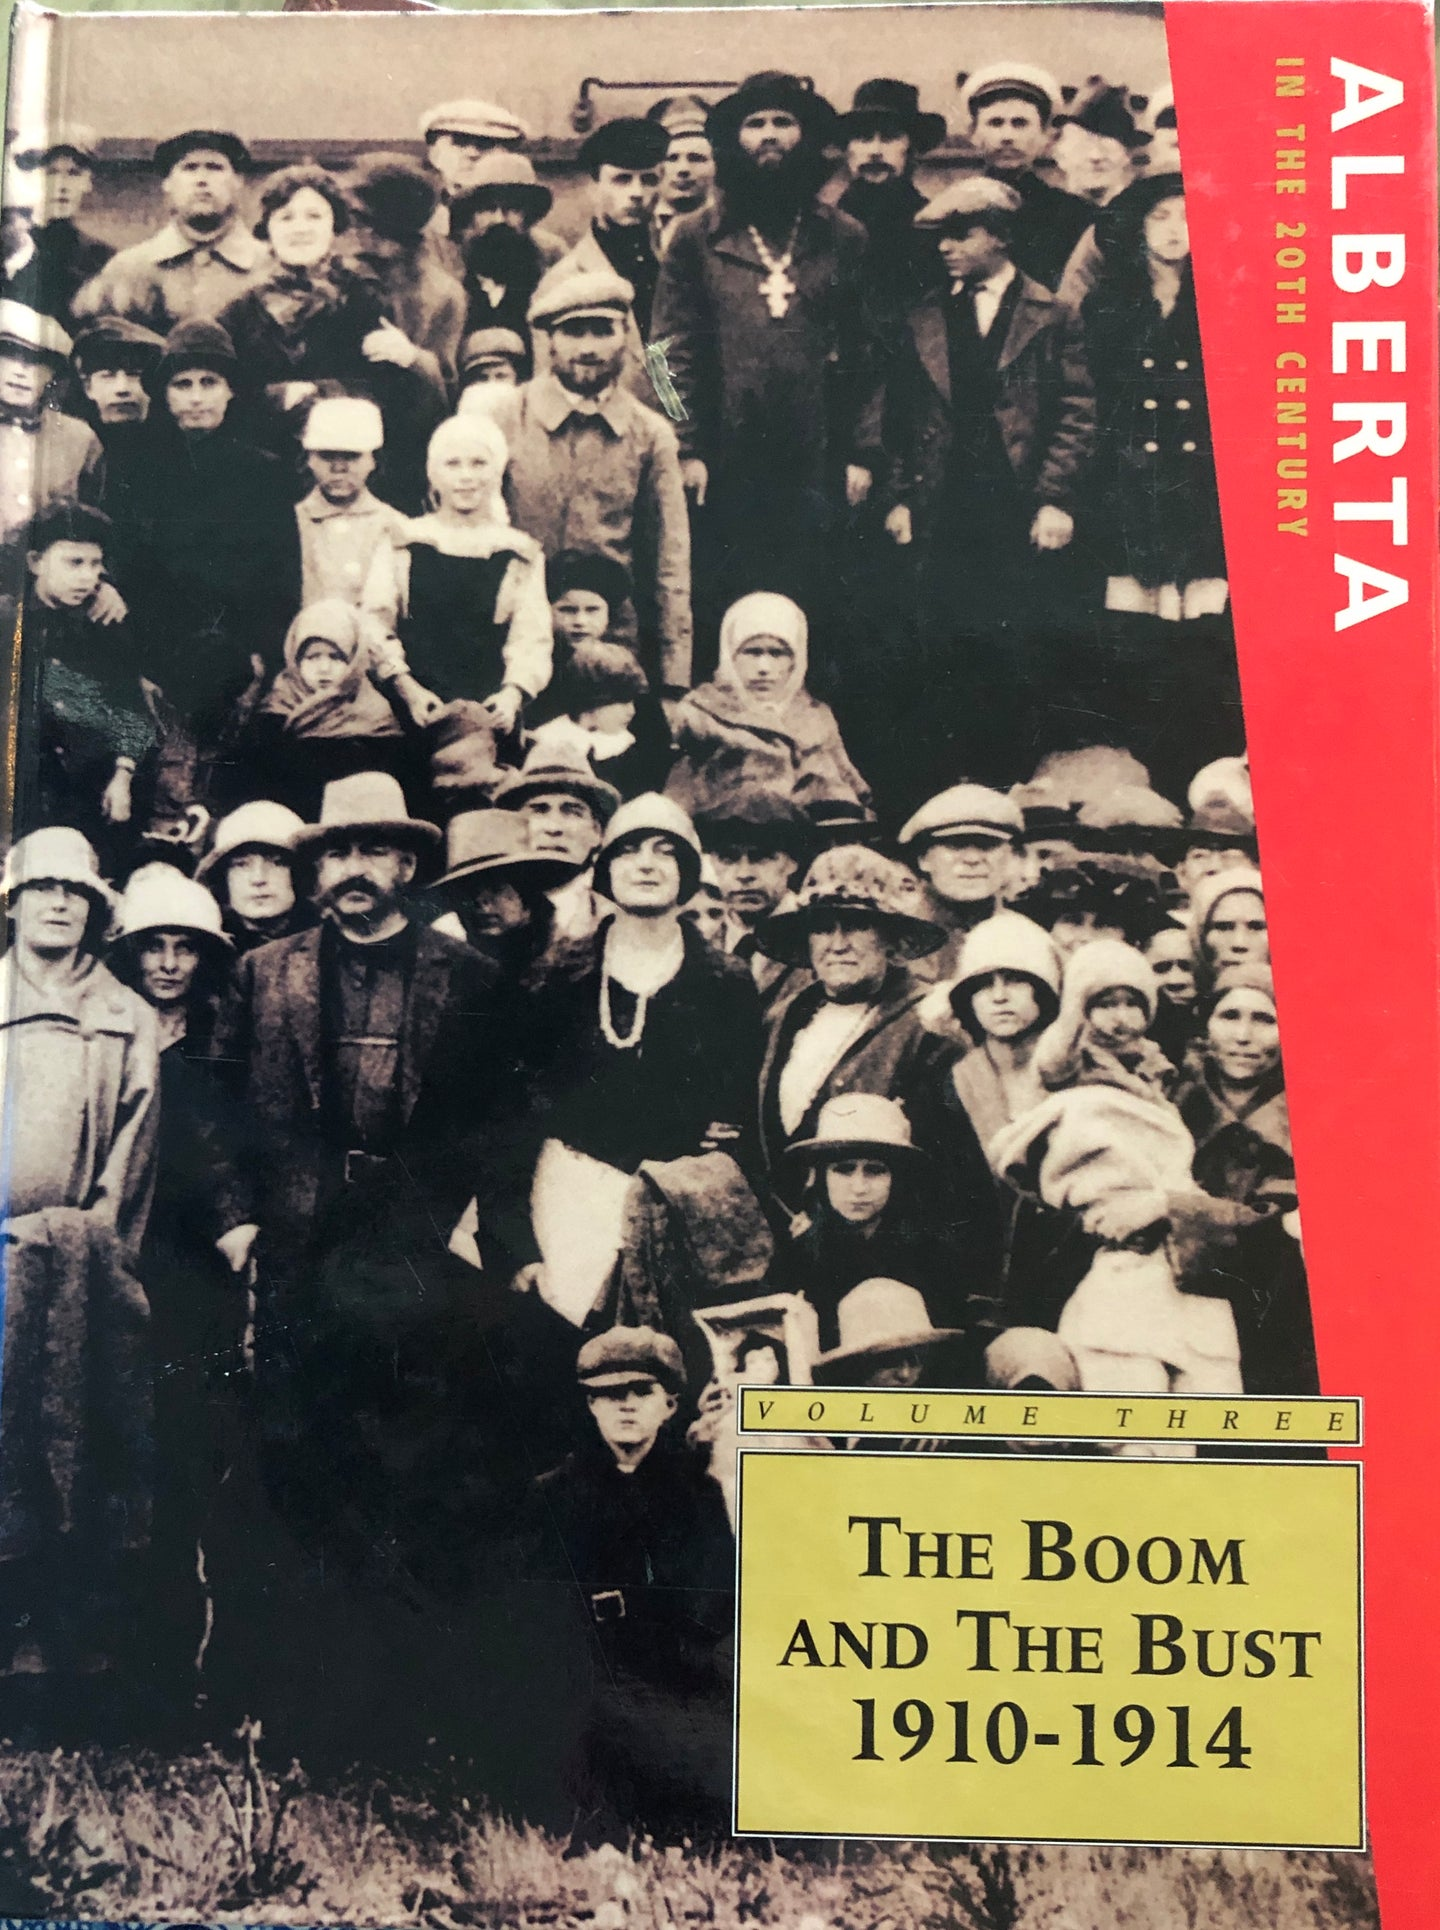 Alberta in the 20th Century (Vol.3): The Boom and the Bust 1910-1914